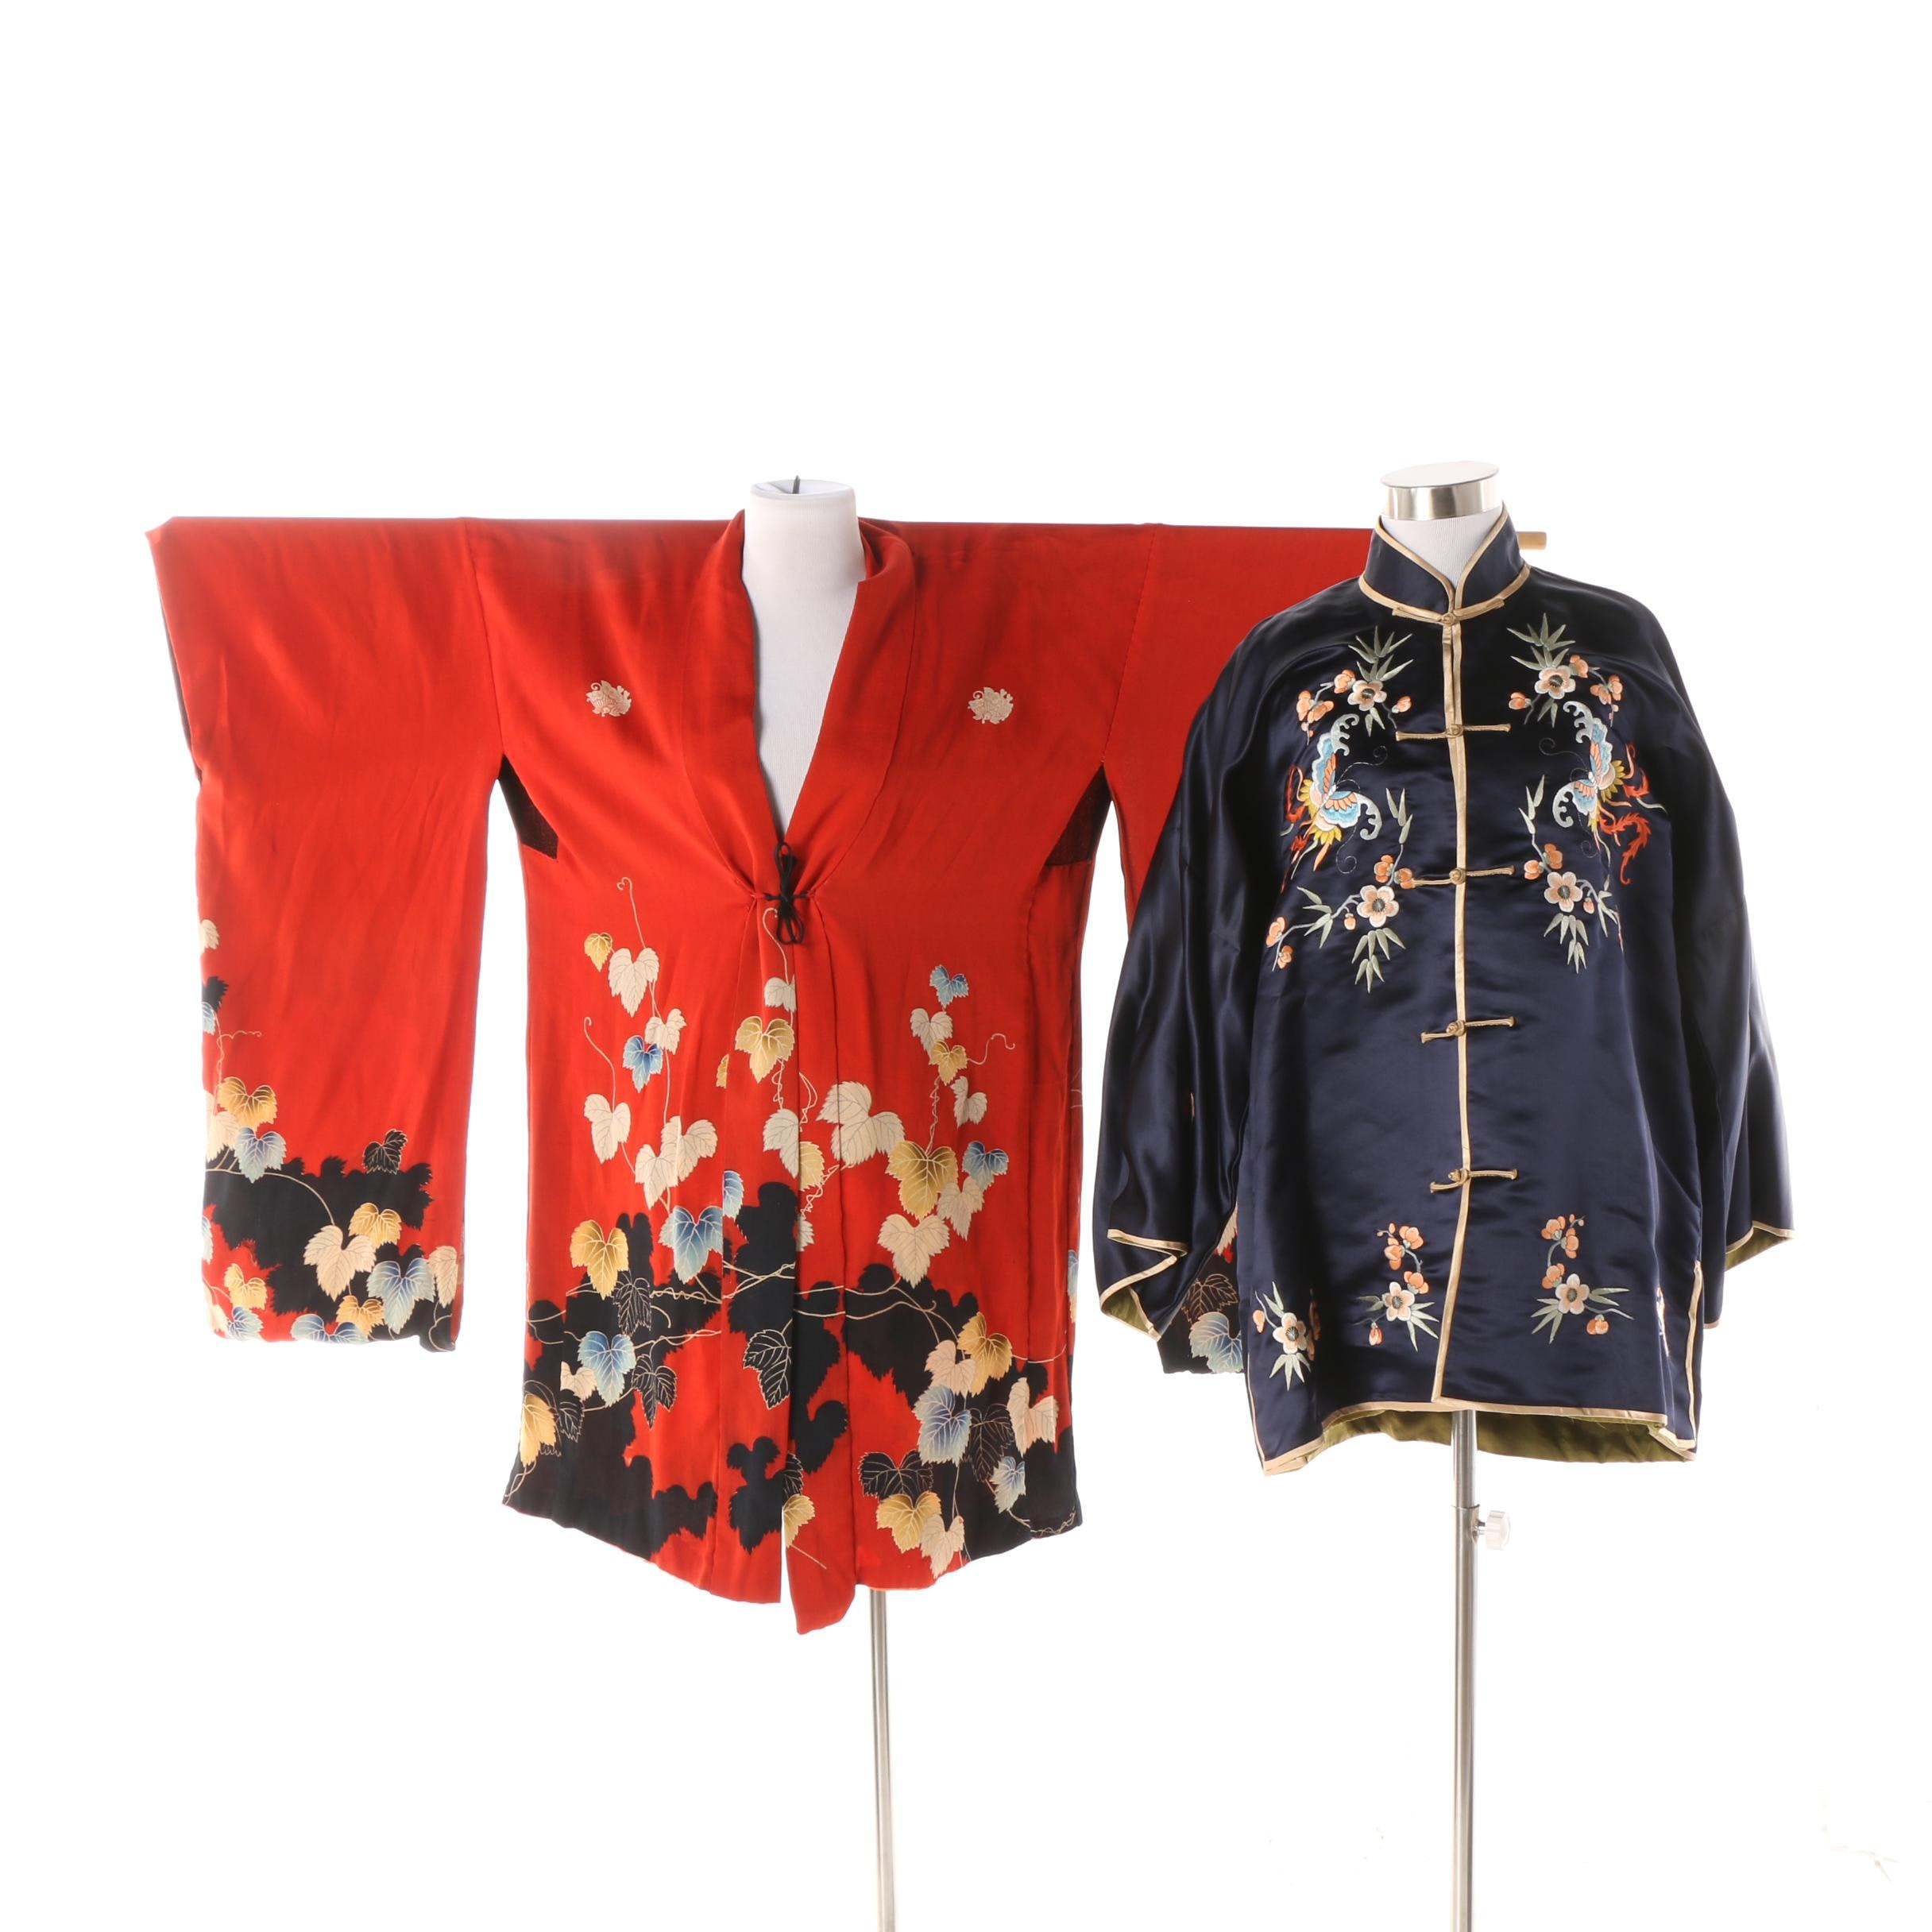 Japanese Handwoven Silk Haori Jacket and Chinese Embroidered Tangzhuang Jacket